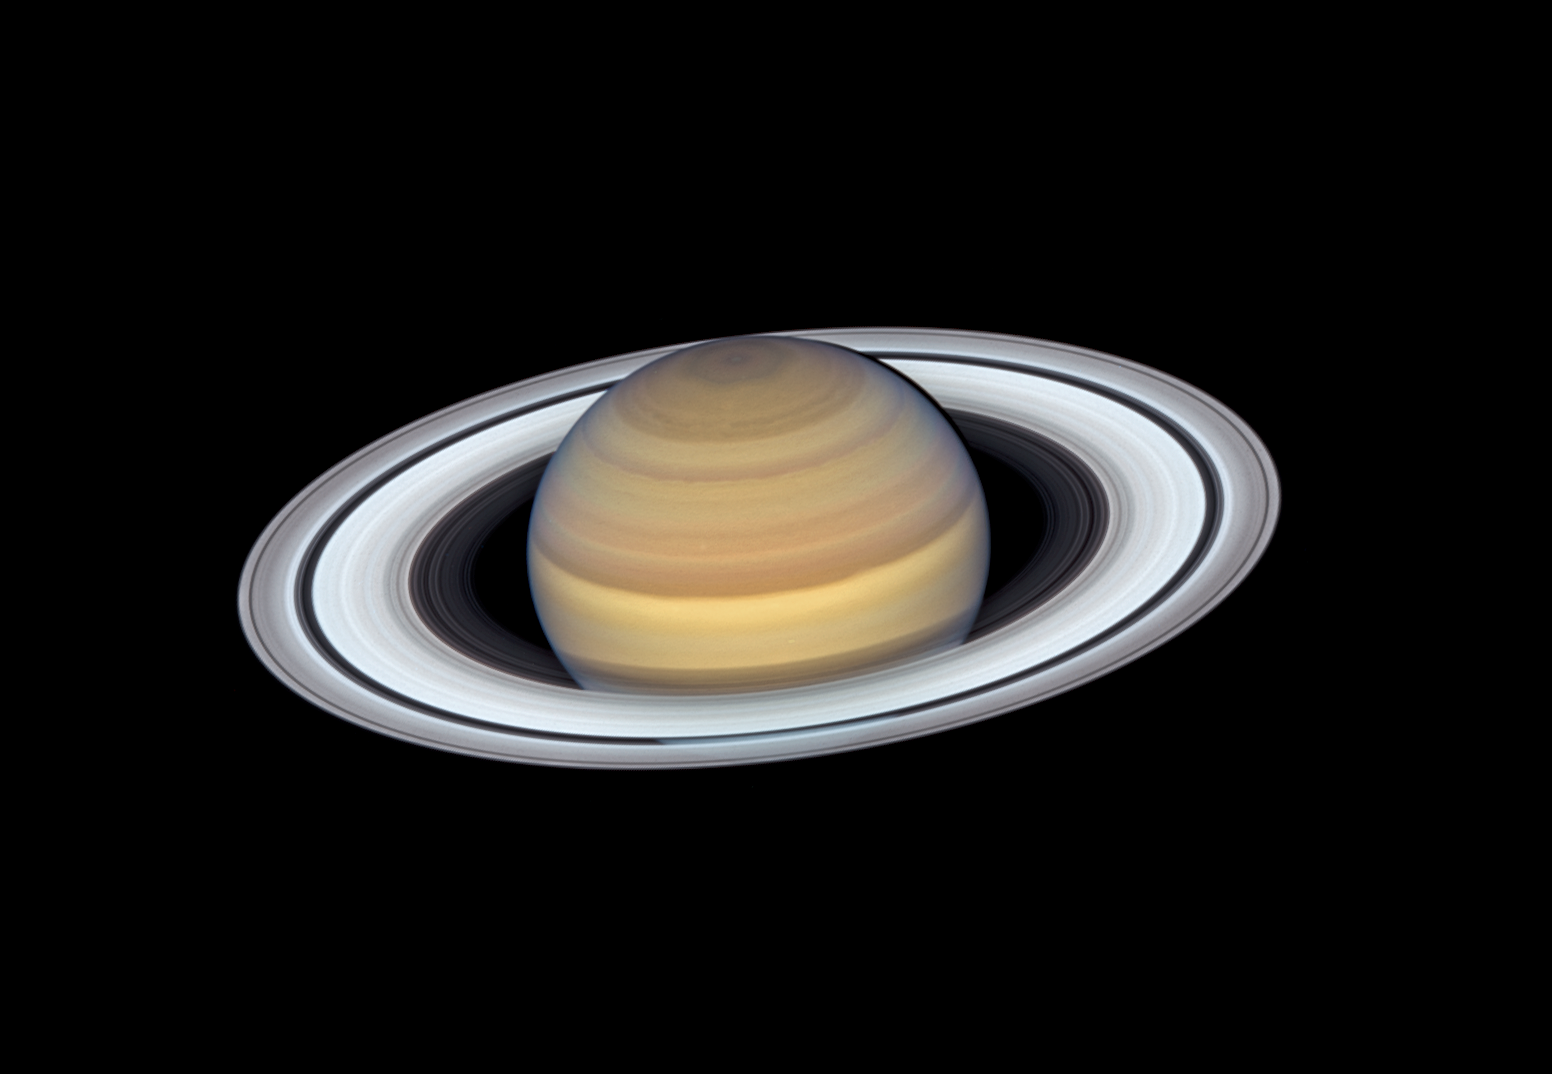 2019 Hubble Space Telescope view of Saturn and its rings